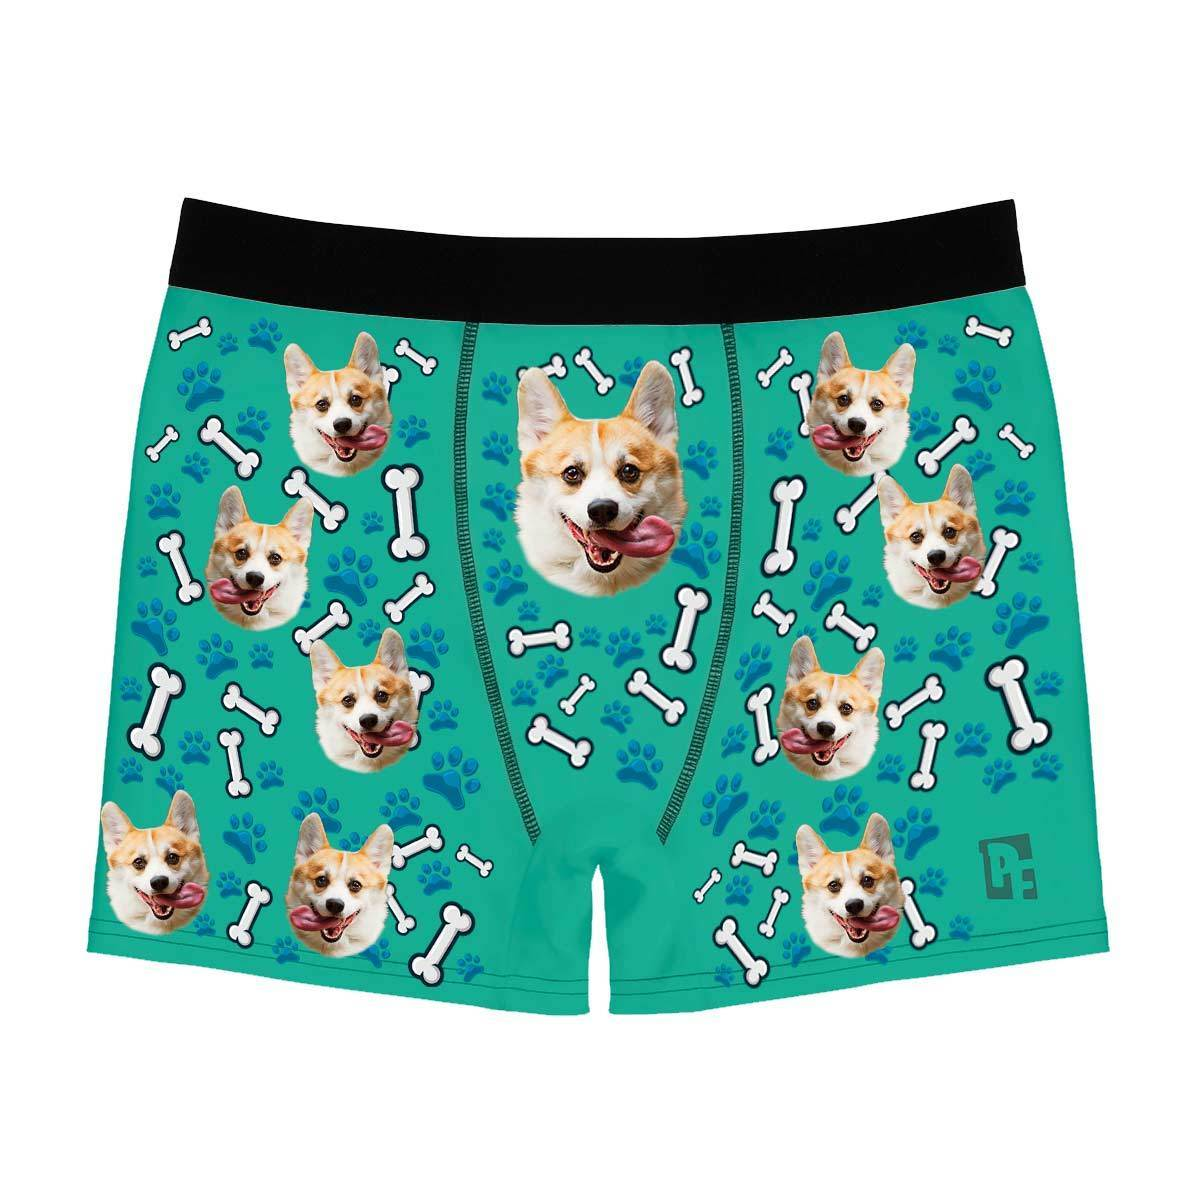 Mint Dog men's boxer briefs personalized with photo printed on them